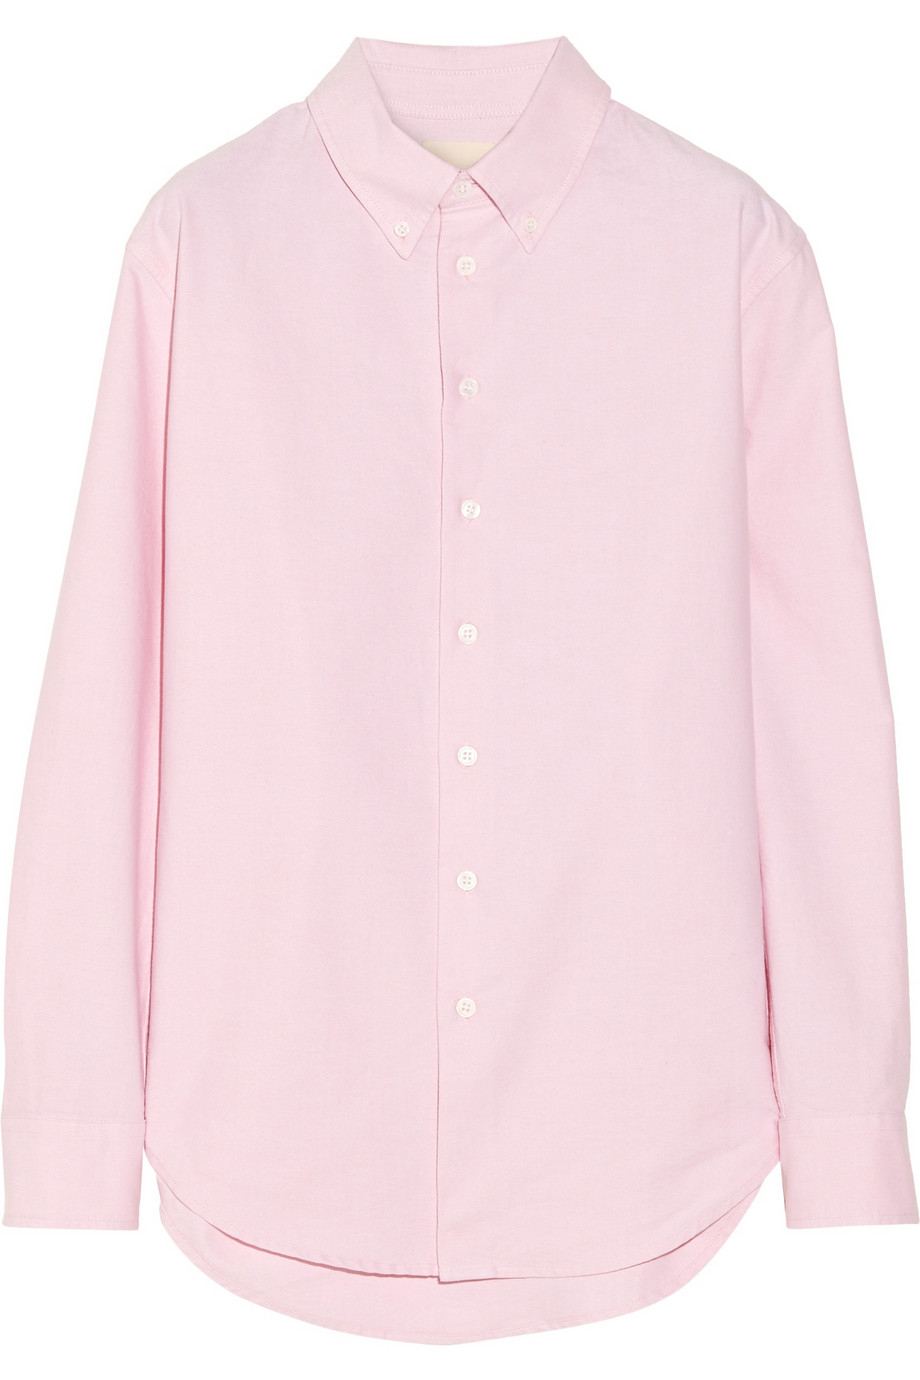 Band of outsiders Cotton Oxford Boyfriend Shirt in Pink | Lyst